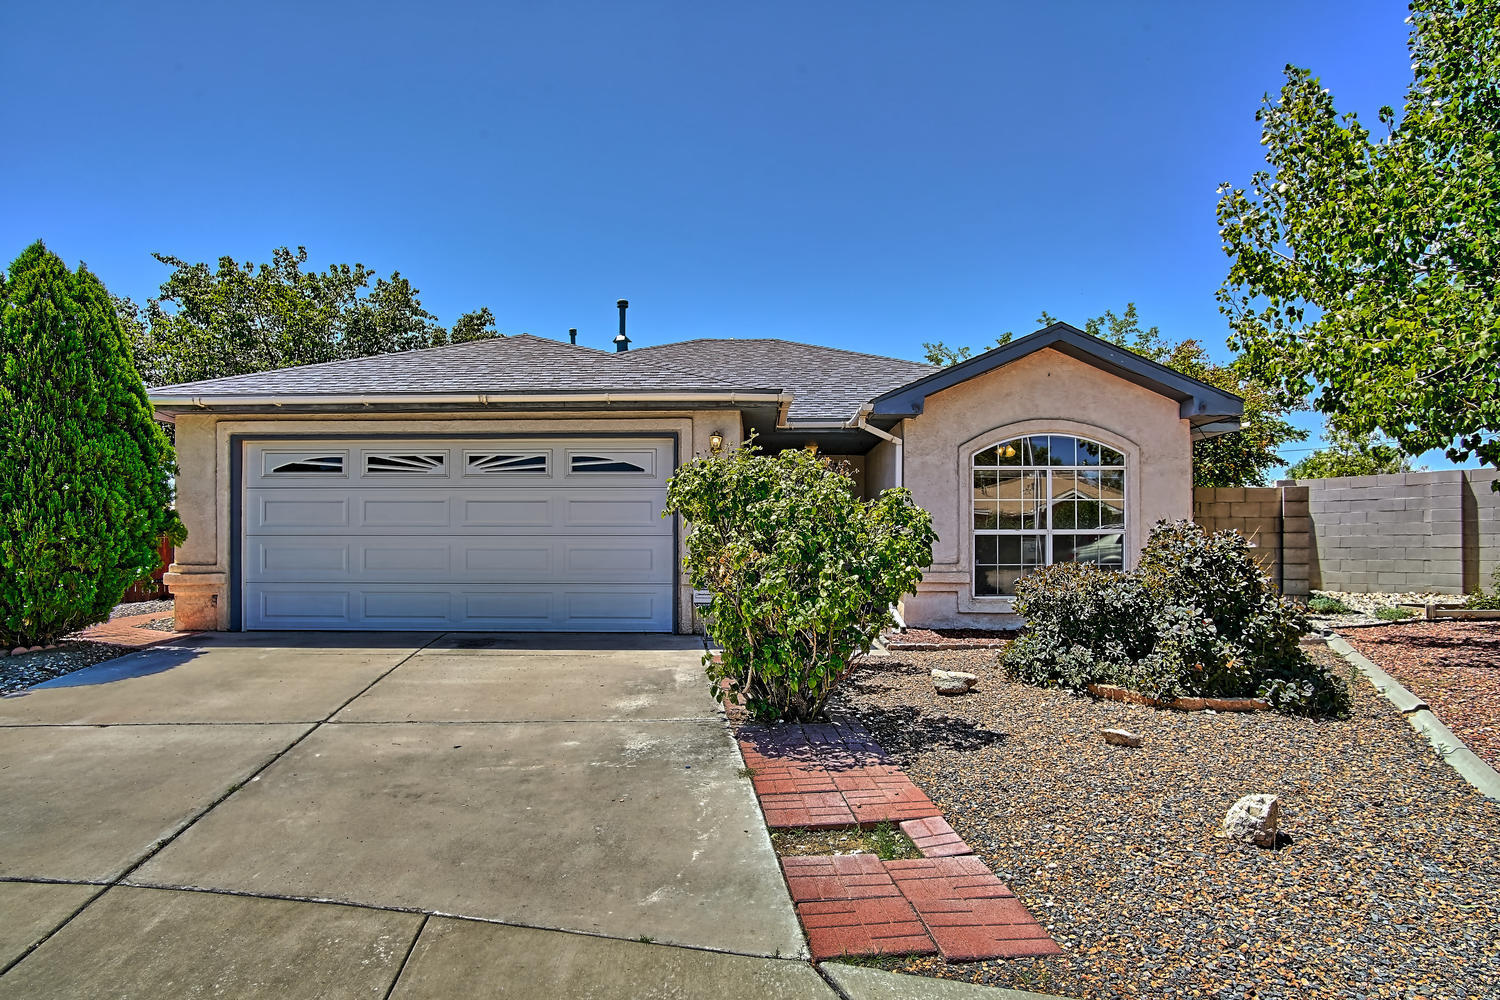 Absolutely wonderful Upgraded and Updated home ideally situated adjacent to Open Space! Over 20k in recent updates! New roof in 8/2019! Recent HVAC REFRIGERATED air combo! Recent paint/carpet! Recent Stainless steel Whirlpool 5 burner gas range+microwave! Inviting Living room featuring cathedral ceiling*gas log FP+decorator Tile Hearth! Sunny Kitchen boasts abundant cabinetry with a pantry cabinet! Bay window dining area/Tile counters and floors! Owner's suite offers shadowbox ceiling*decorator ceiling fan*walk in closet! Owner's 3/4 bath has Tile flooring*dual sinks*walk in shower!  2  bedrooms on the west side of home, both with ceiling fans! Home lives larger than actual SqFt. Wonderful outdoor living in large backyard! Adjacent to ABQ Open Space with walkways/bike paths!